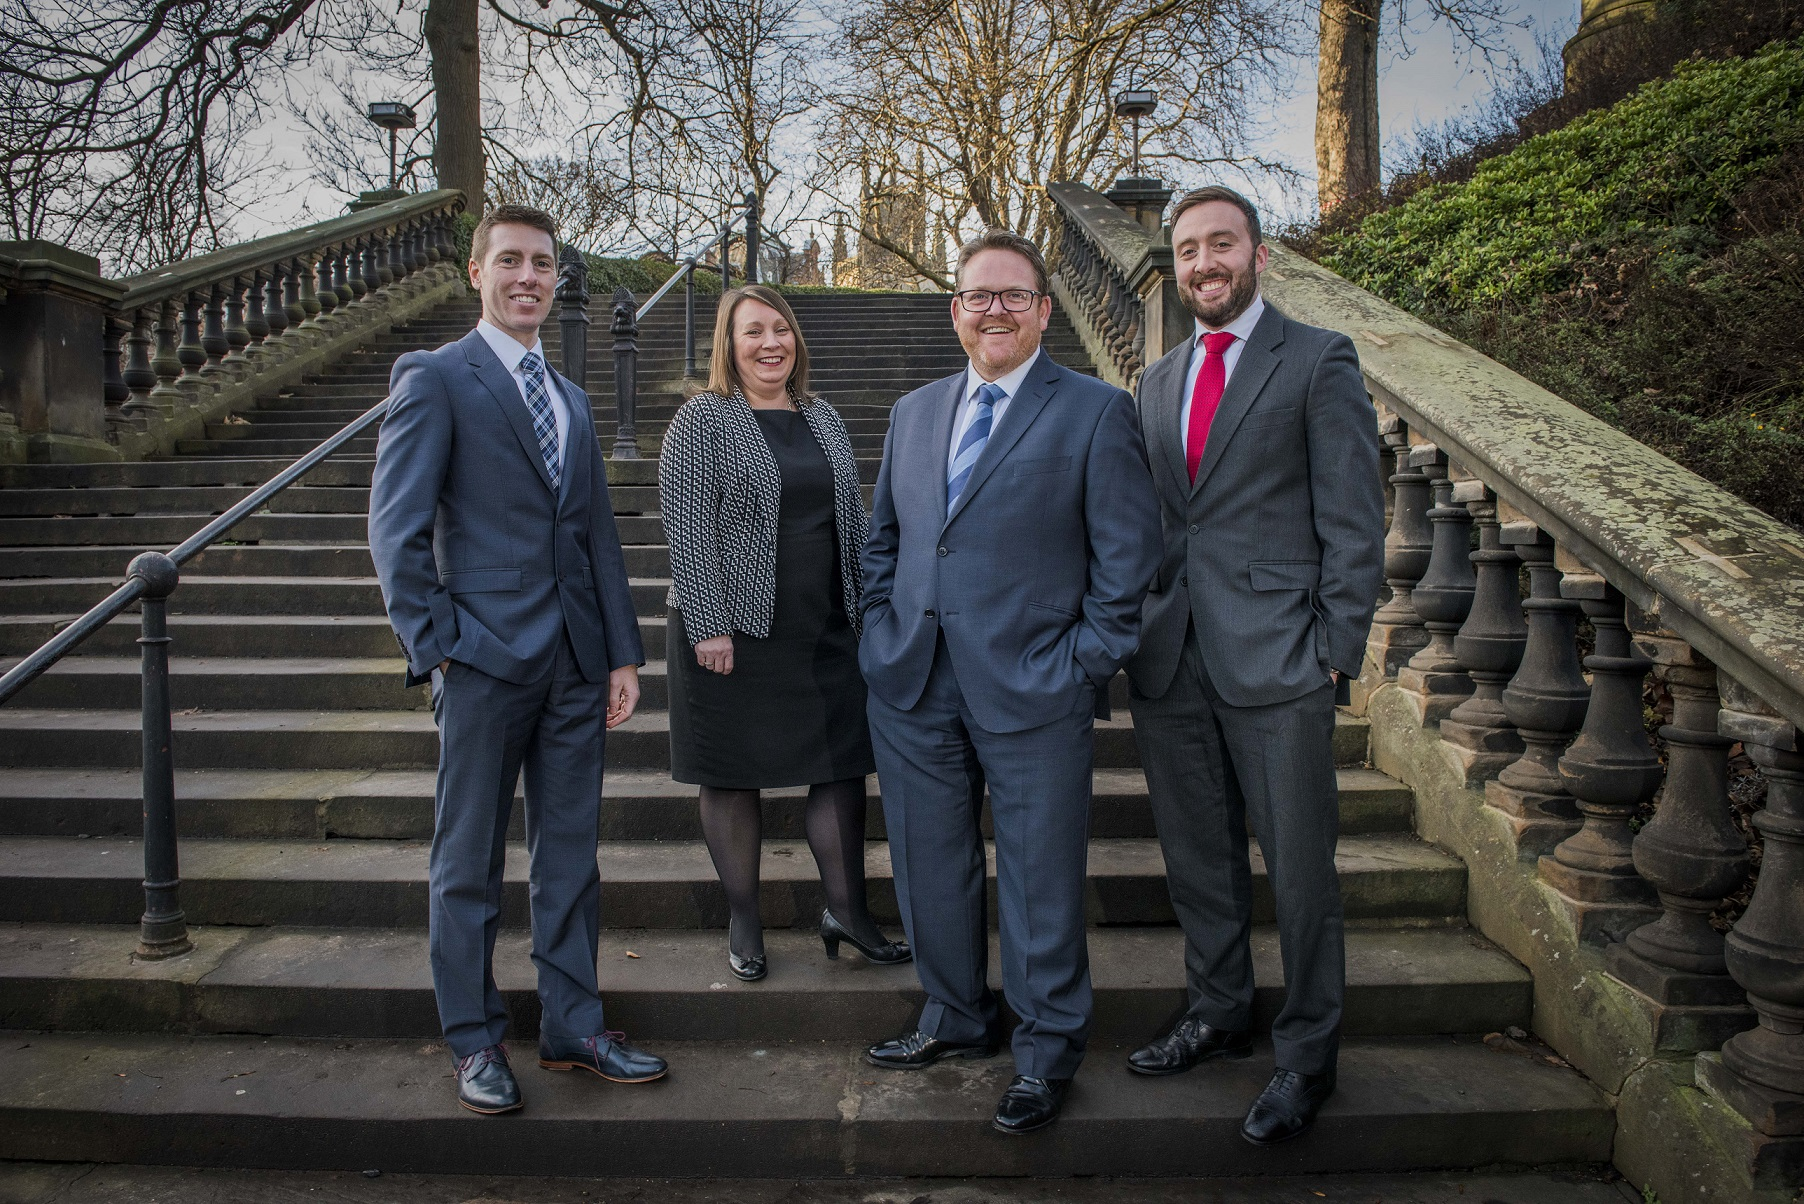 Paragon Edinburgh celebrates first year with 2.2m sq ft of Building Surveys and £300m in insurance valuations